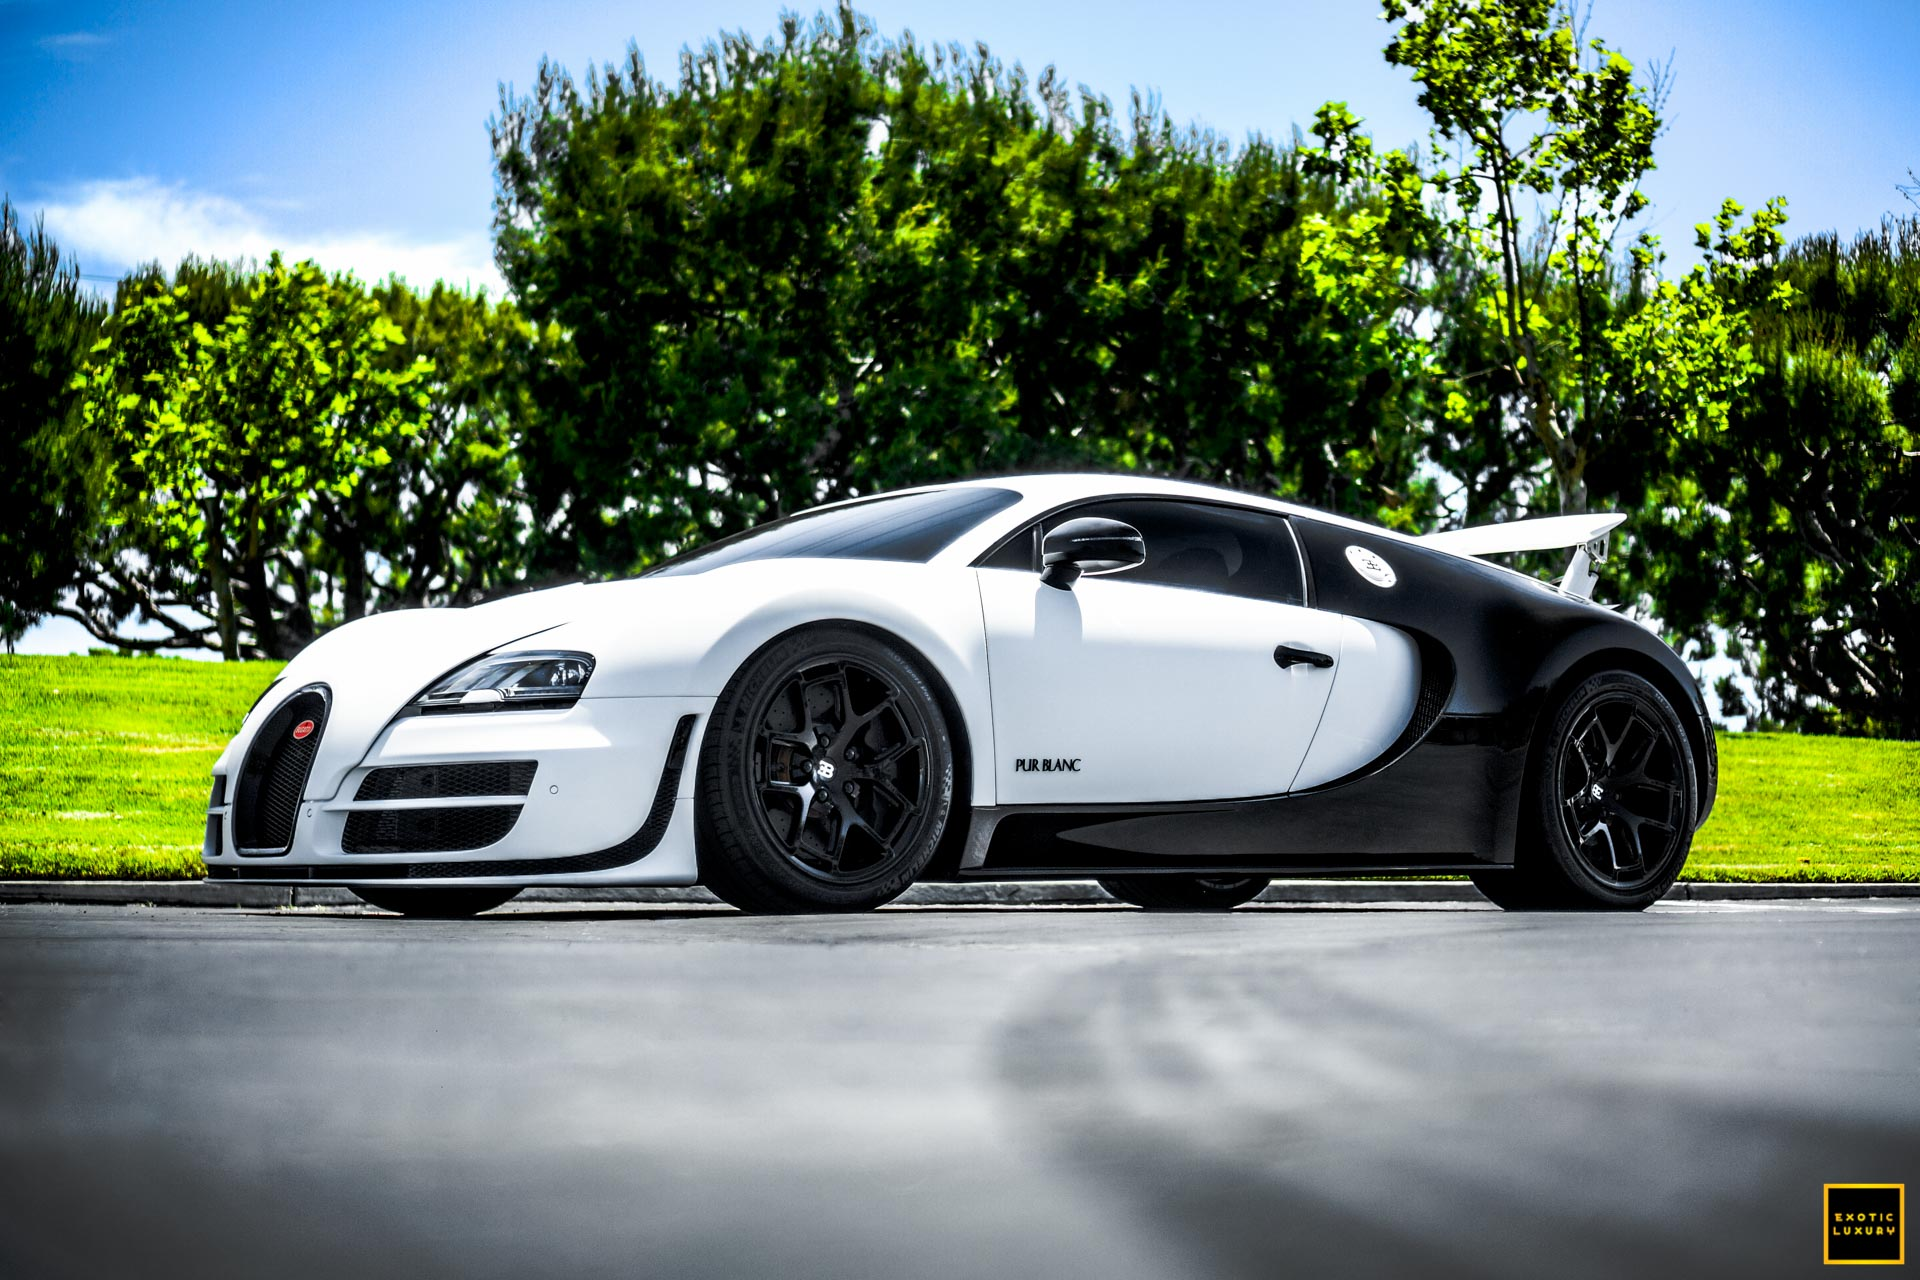 Bugatti Veyron - Paint Protection by Protective Film Solutions